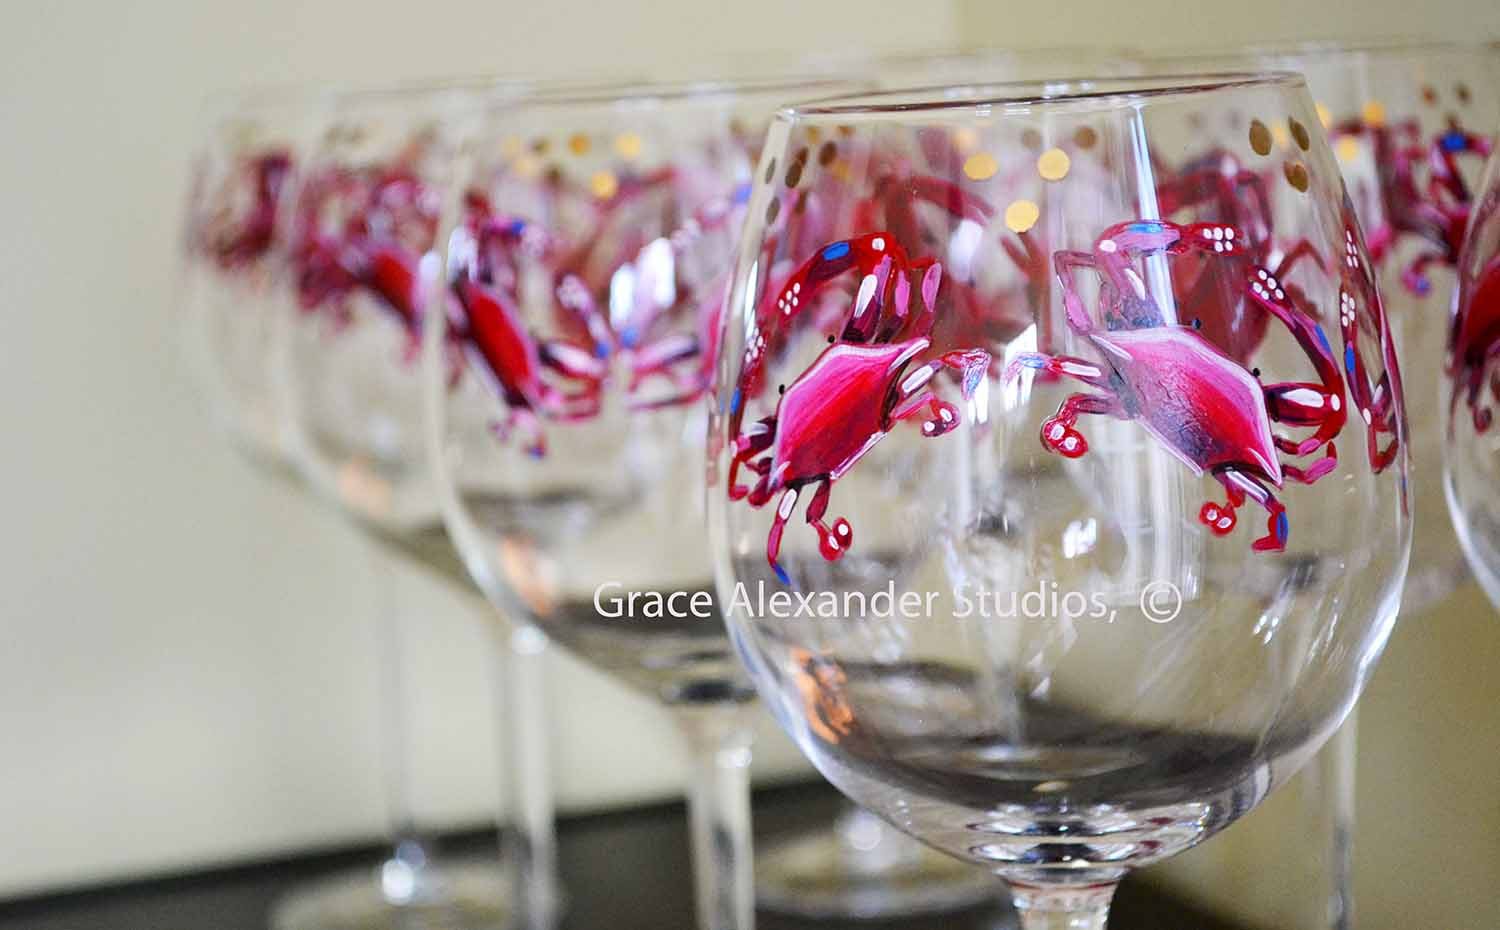 Annapolis Maryland Red Crab with Blue Accents Hand Painted Red Wine Stemmed Glassware with gold Accents and Signed by Artist-Chesapeake Red Crab, Red Crab Wine Glasses, Annapolis Wine Glasses, Annapolis Gifts, Maryland Red Crab Glass, Red Wine Crab Glass